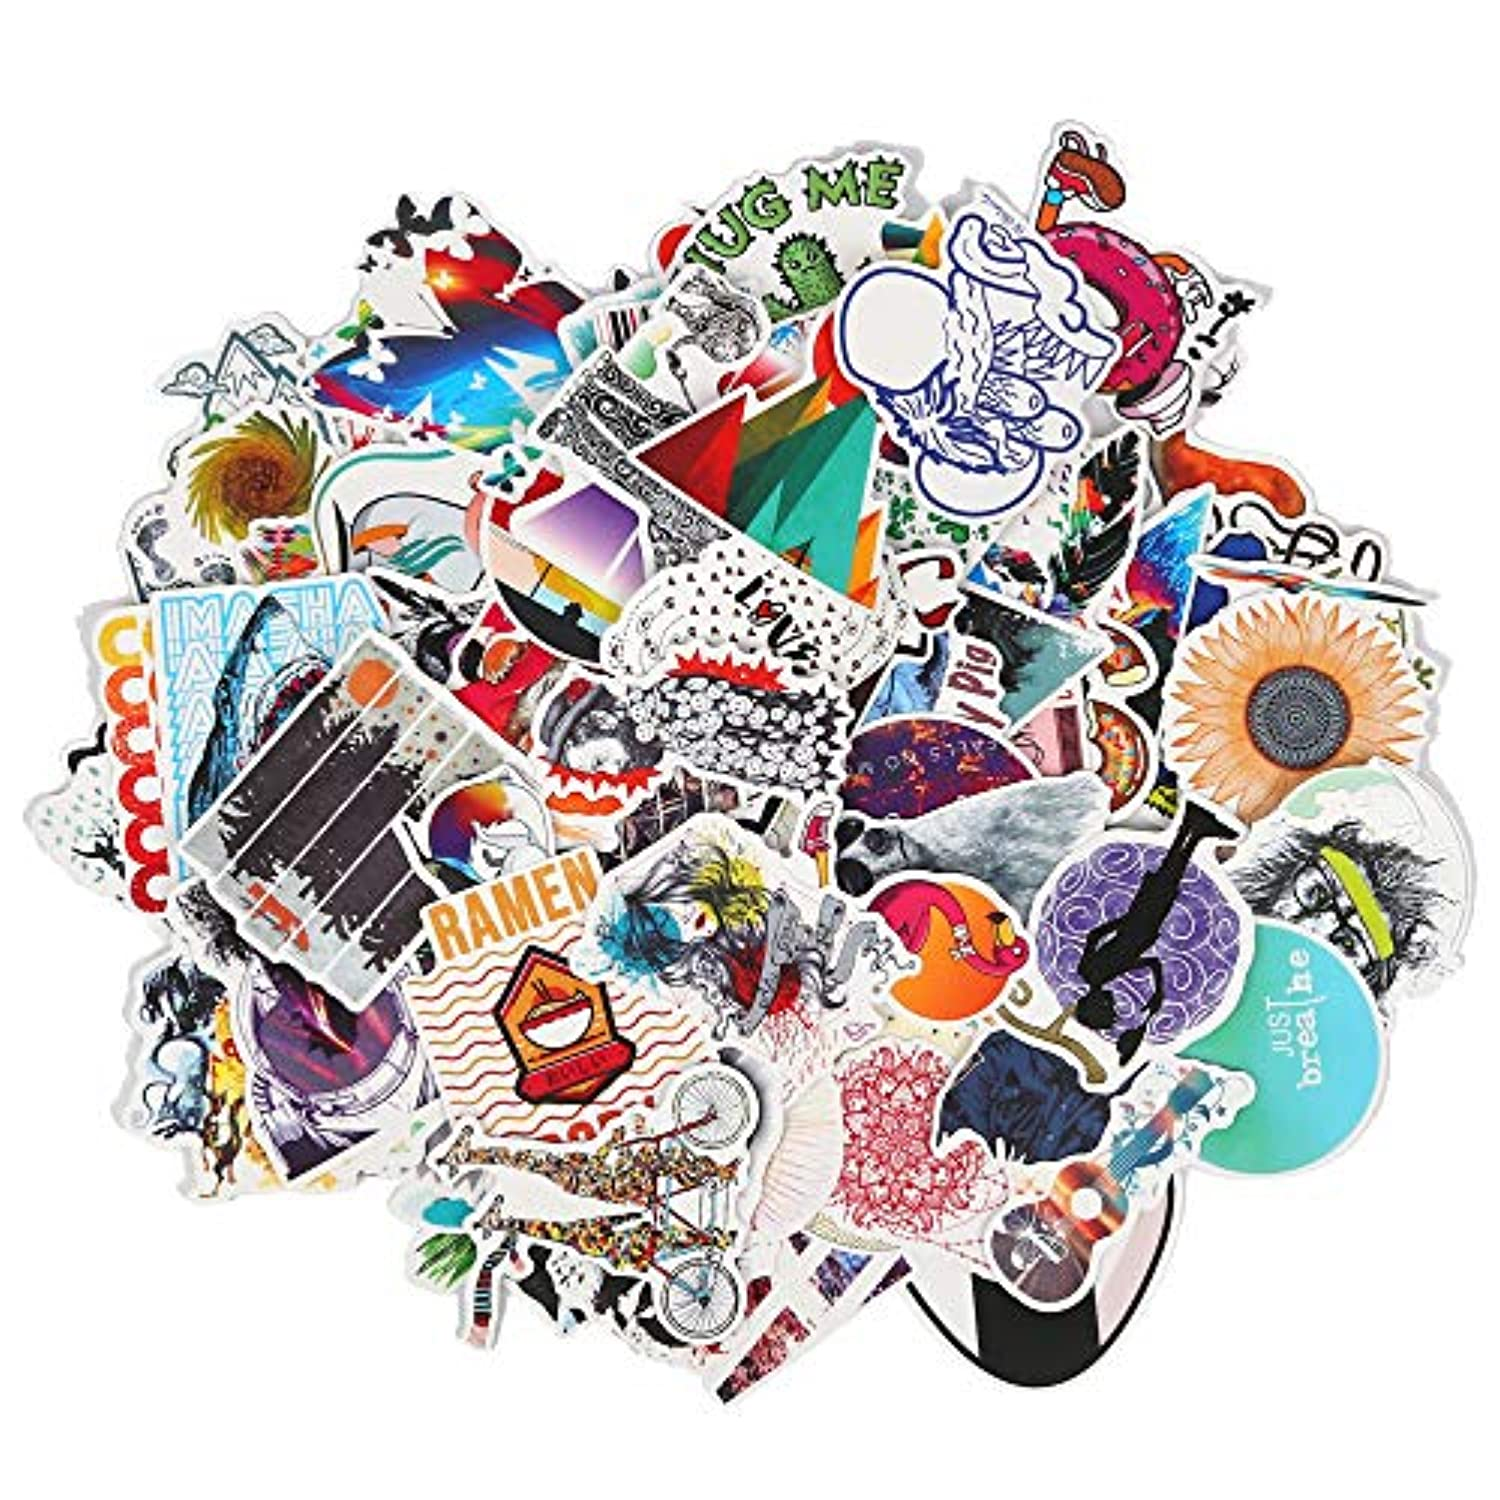 Cute Cartoon Stickers 100 Pieces Waterproof Polyvinyl Chloride Stickers for Personalize Laptops, Skateboards, Cars, Bumpers, Helmet, Luggage Graffiti Decals